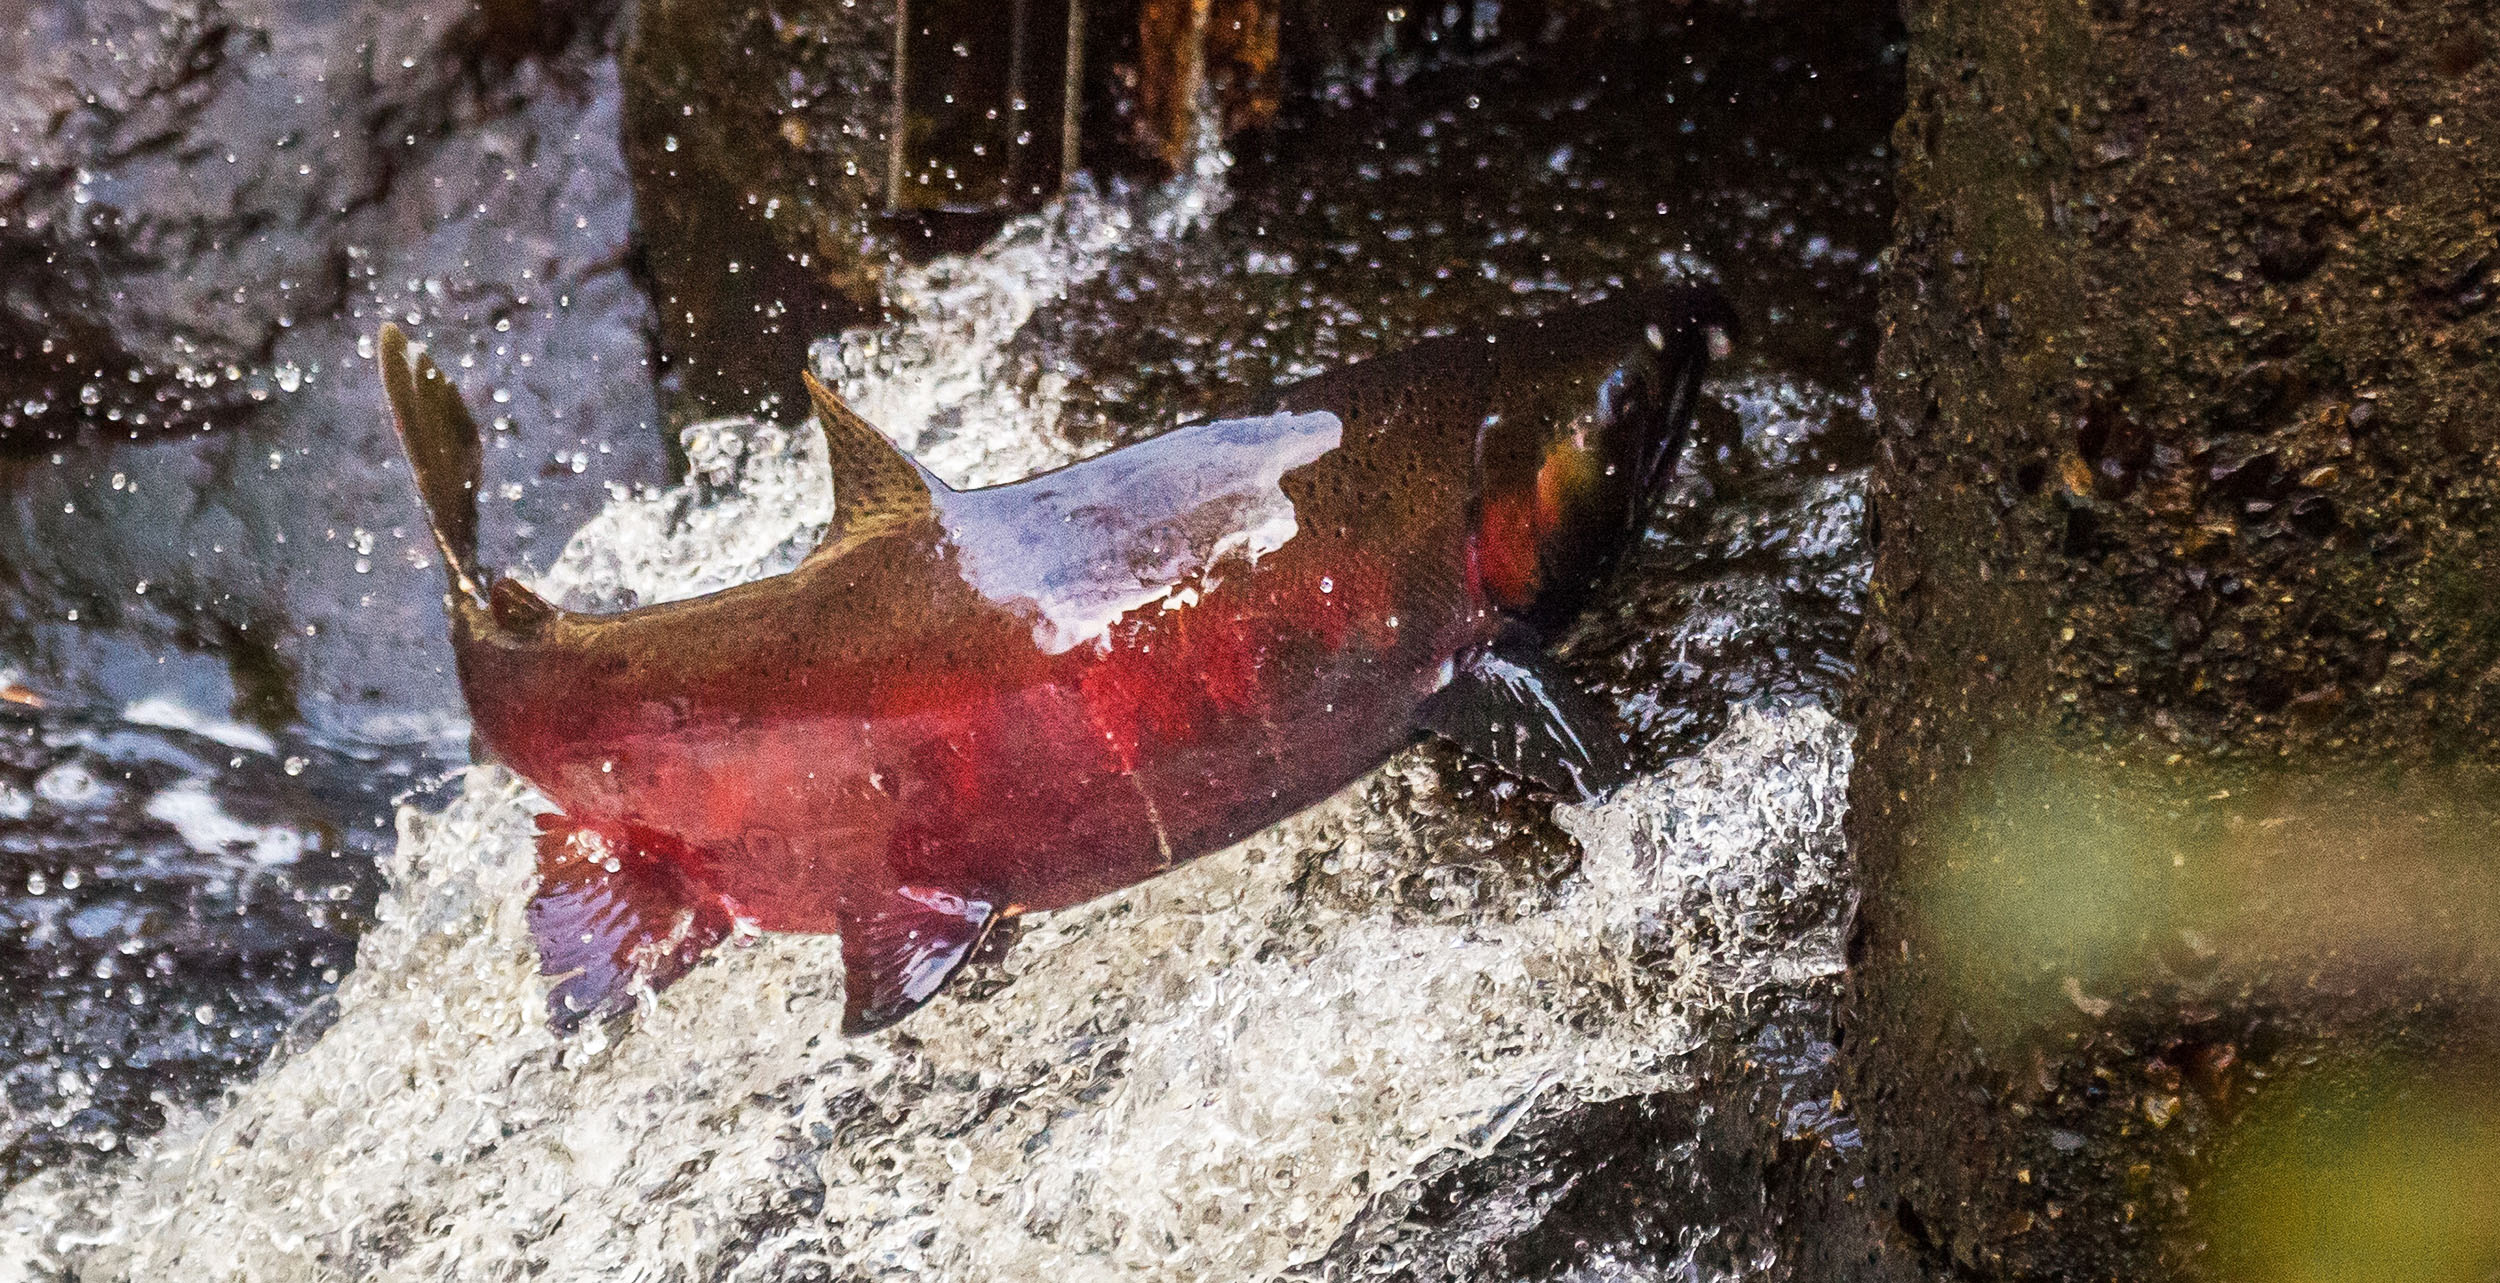 Spawning salmon jumping in a bc river conrad olson copy